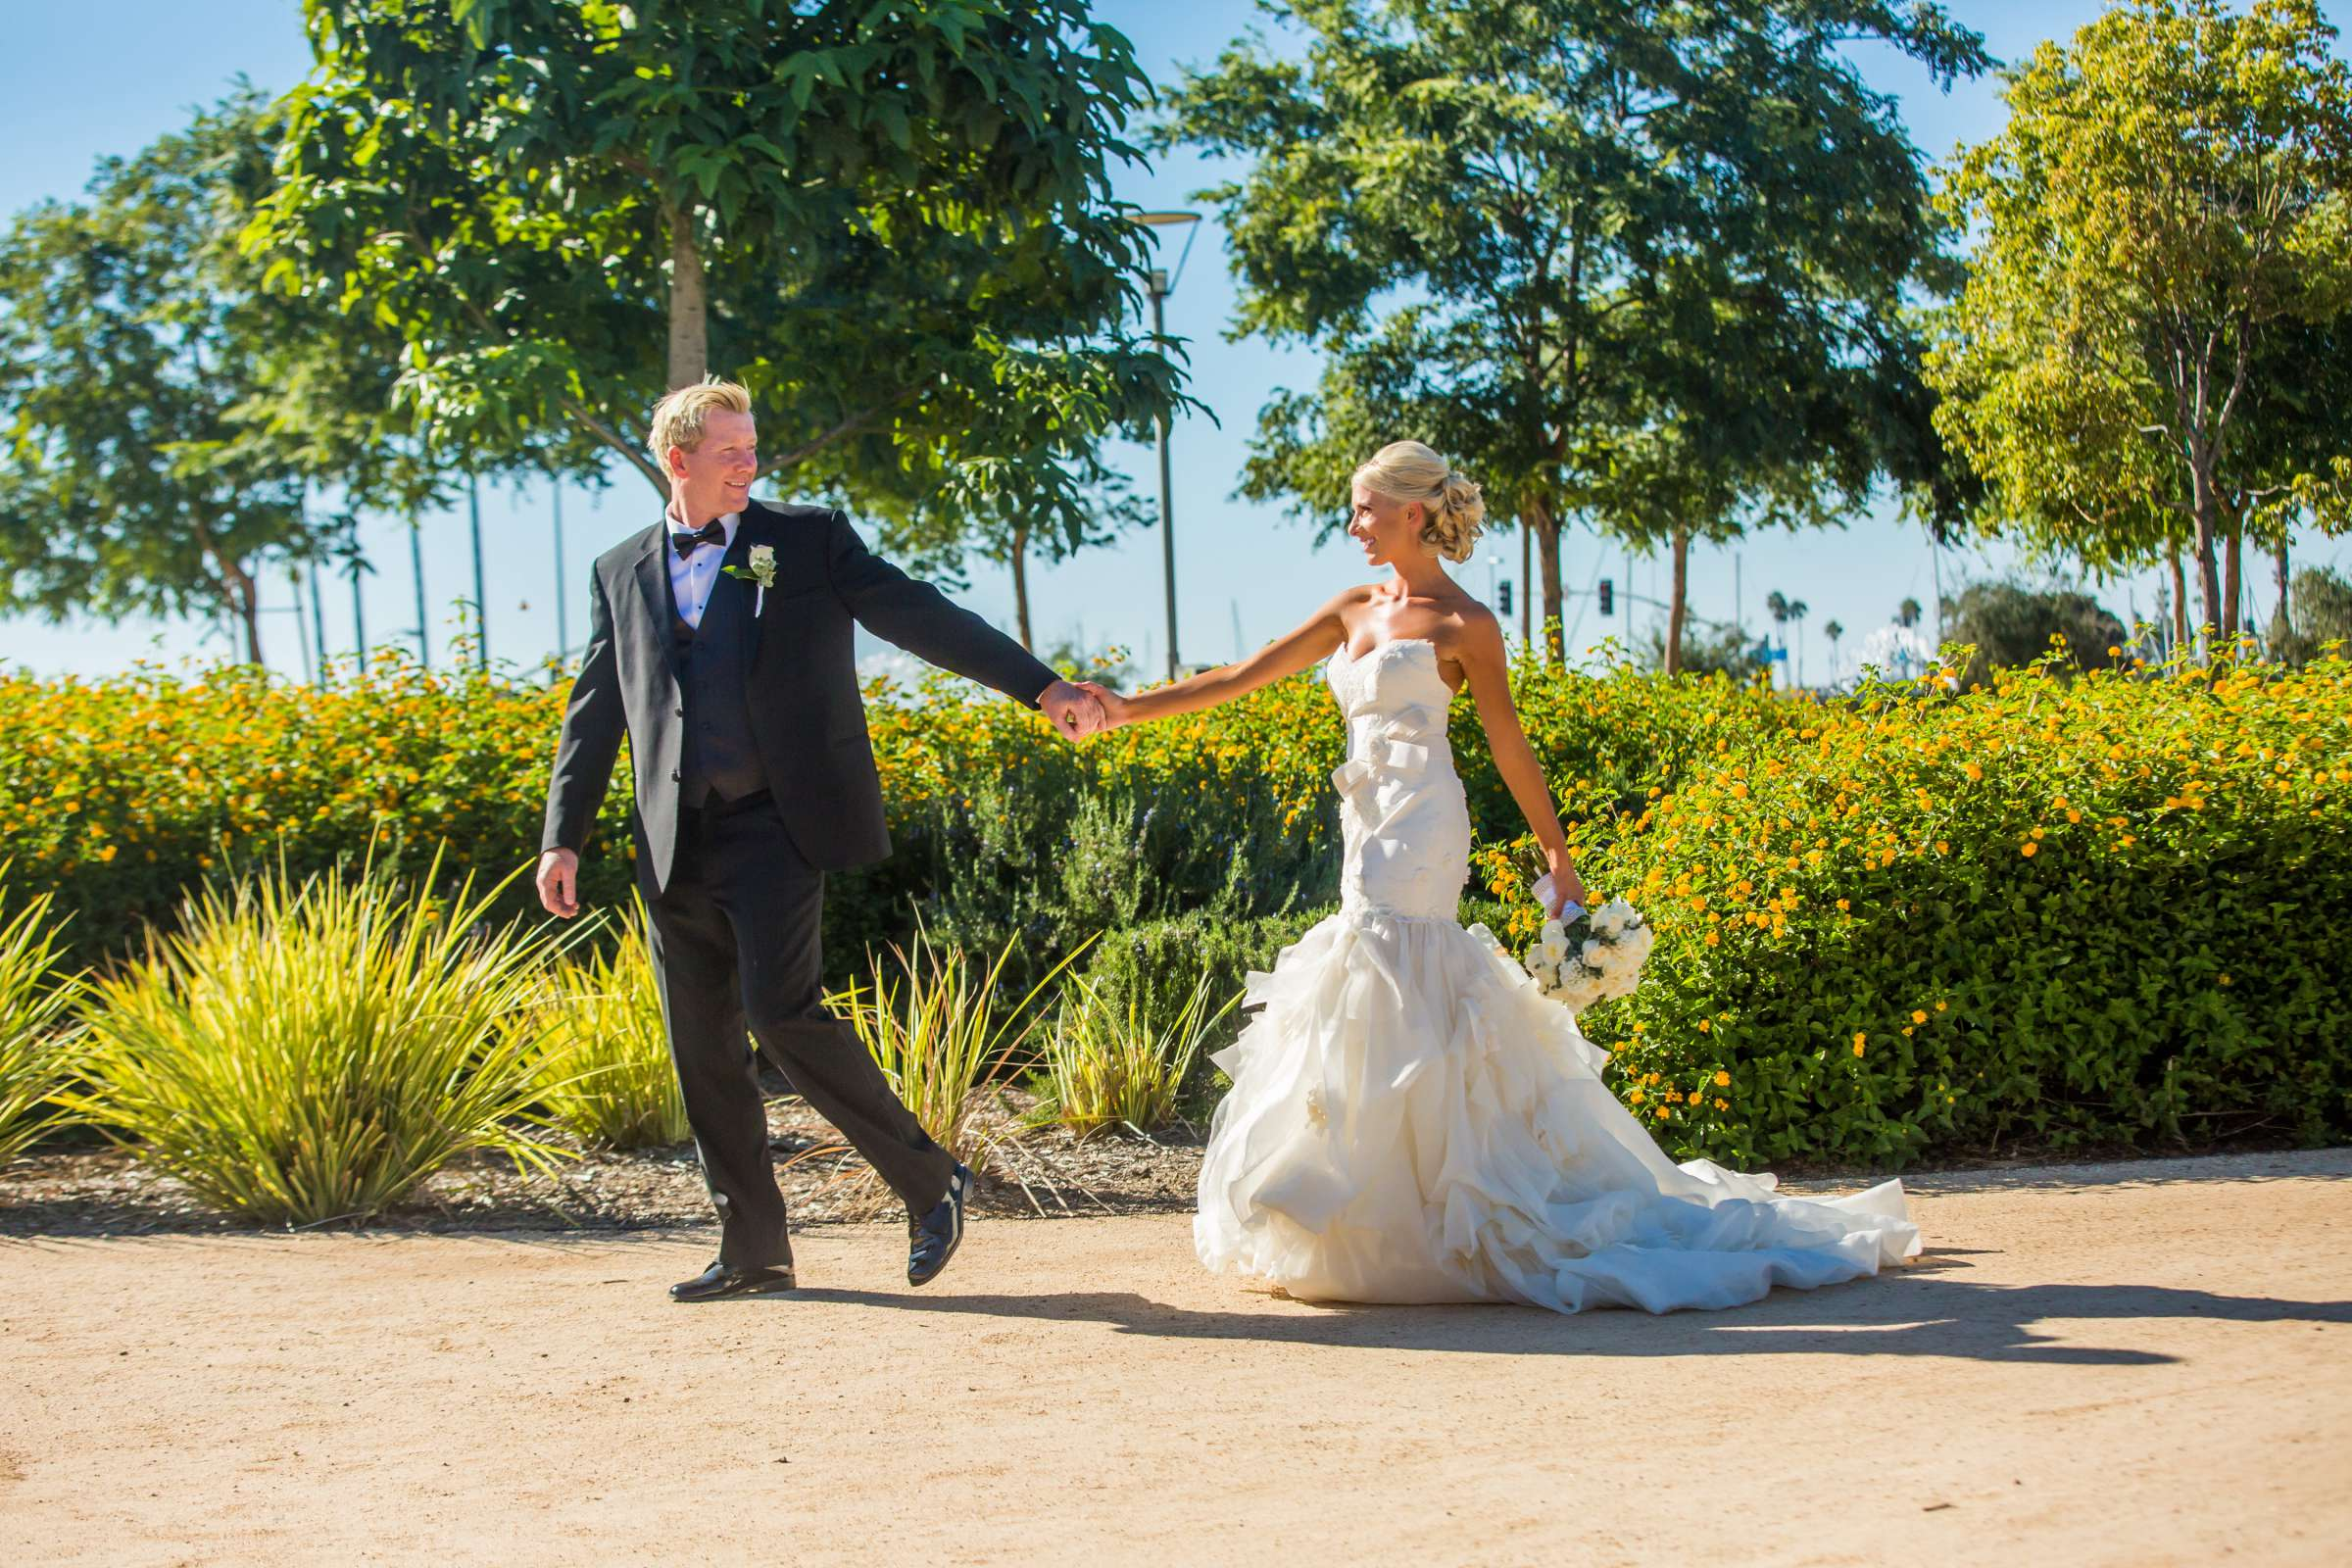 Waterfront Park Wedding coordinated by Socal Soiree, Jennell and Terry Wedding Photo #23 by True Photography